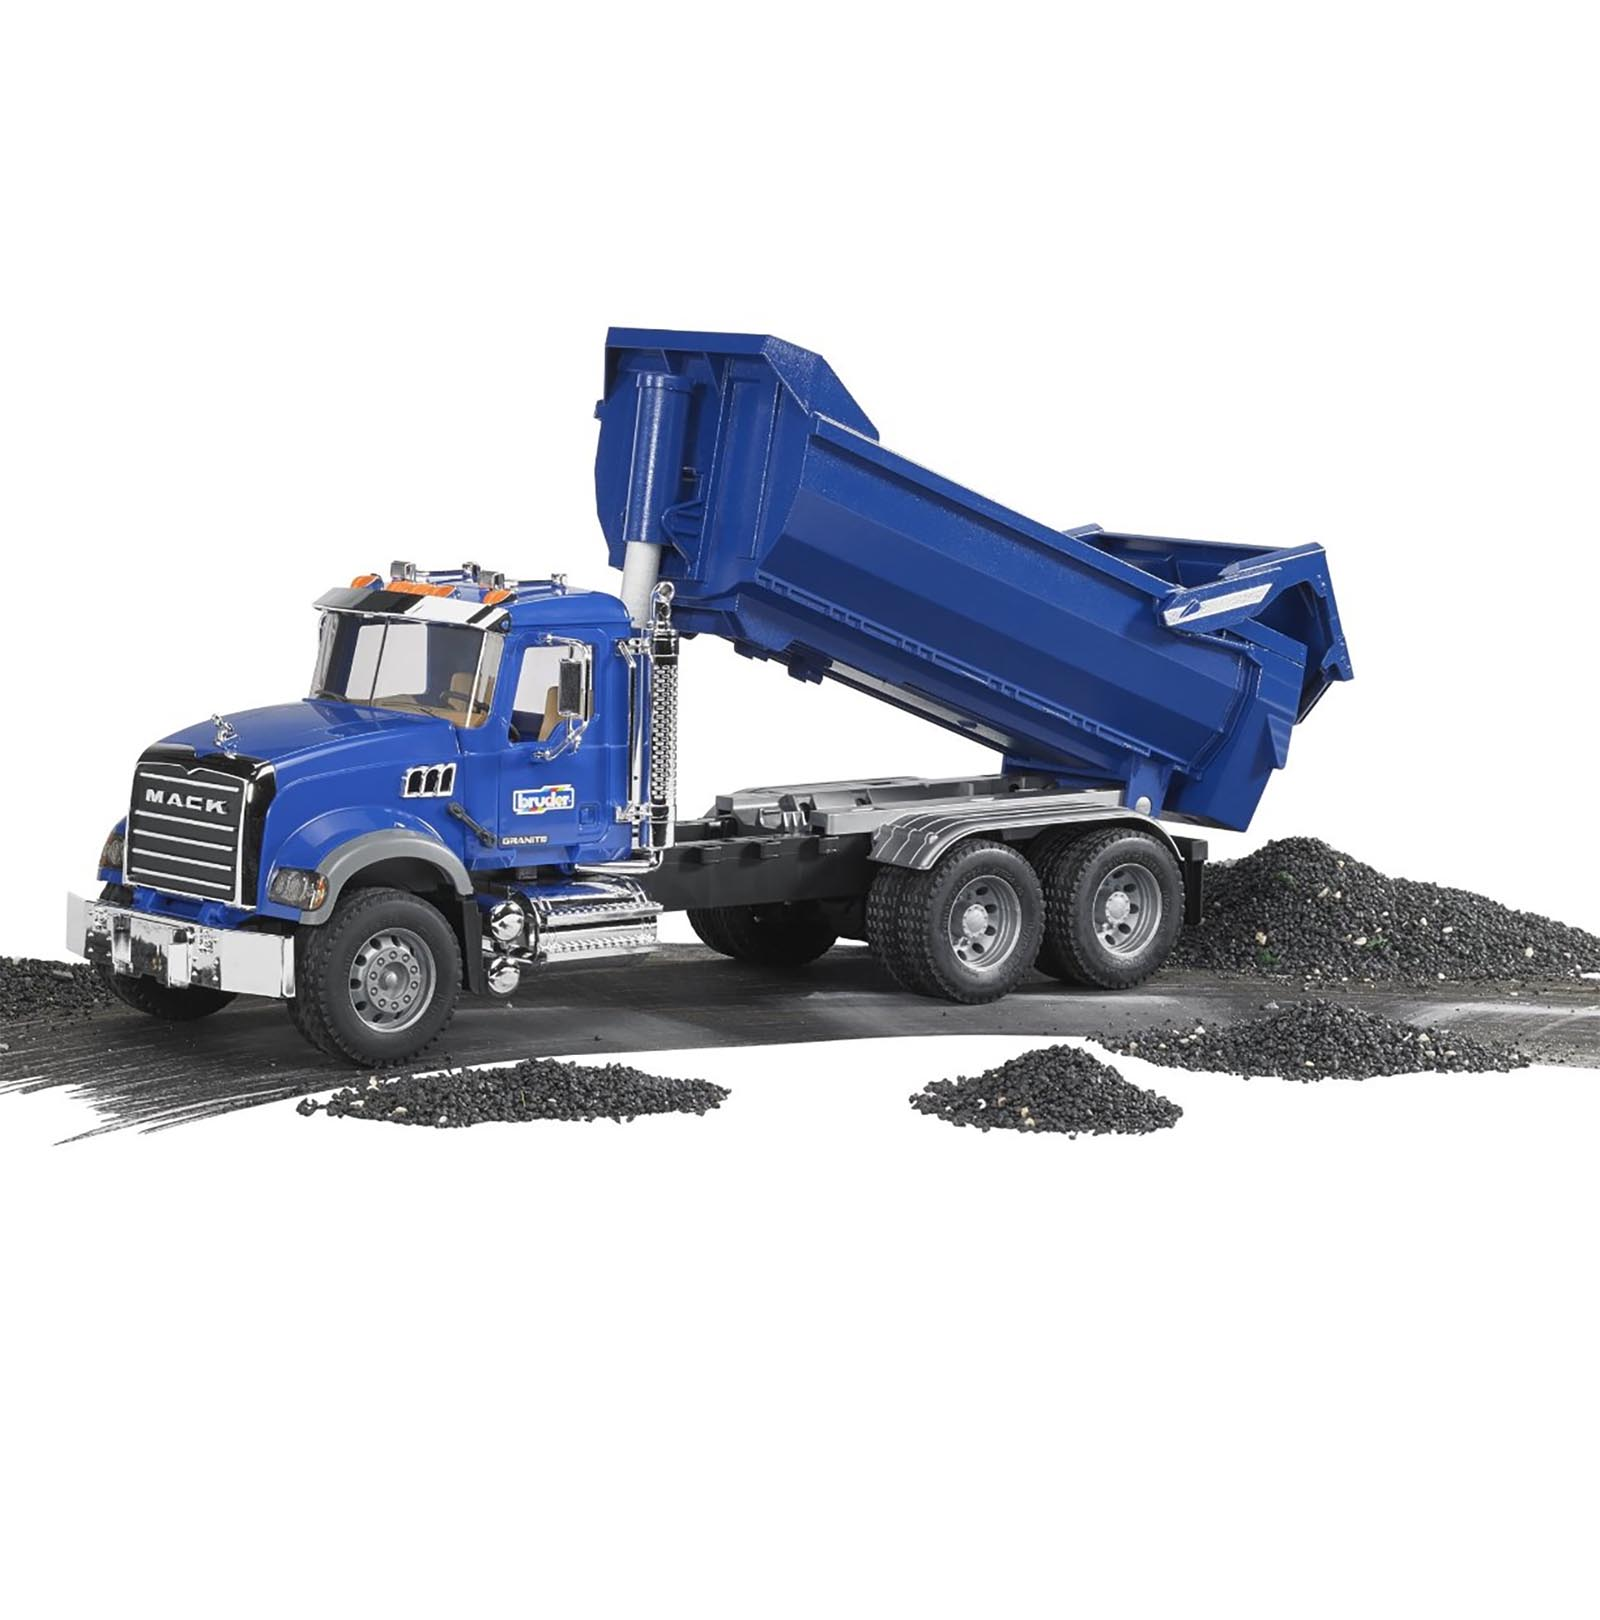 bruder toys kids toy 1 16 model replica mack granite halfpipe dump